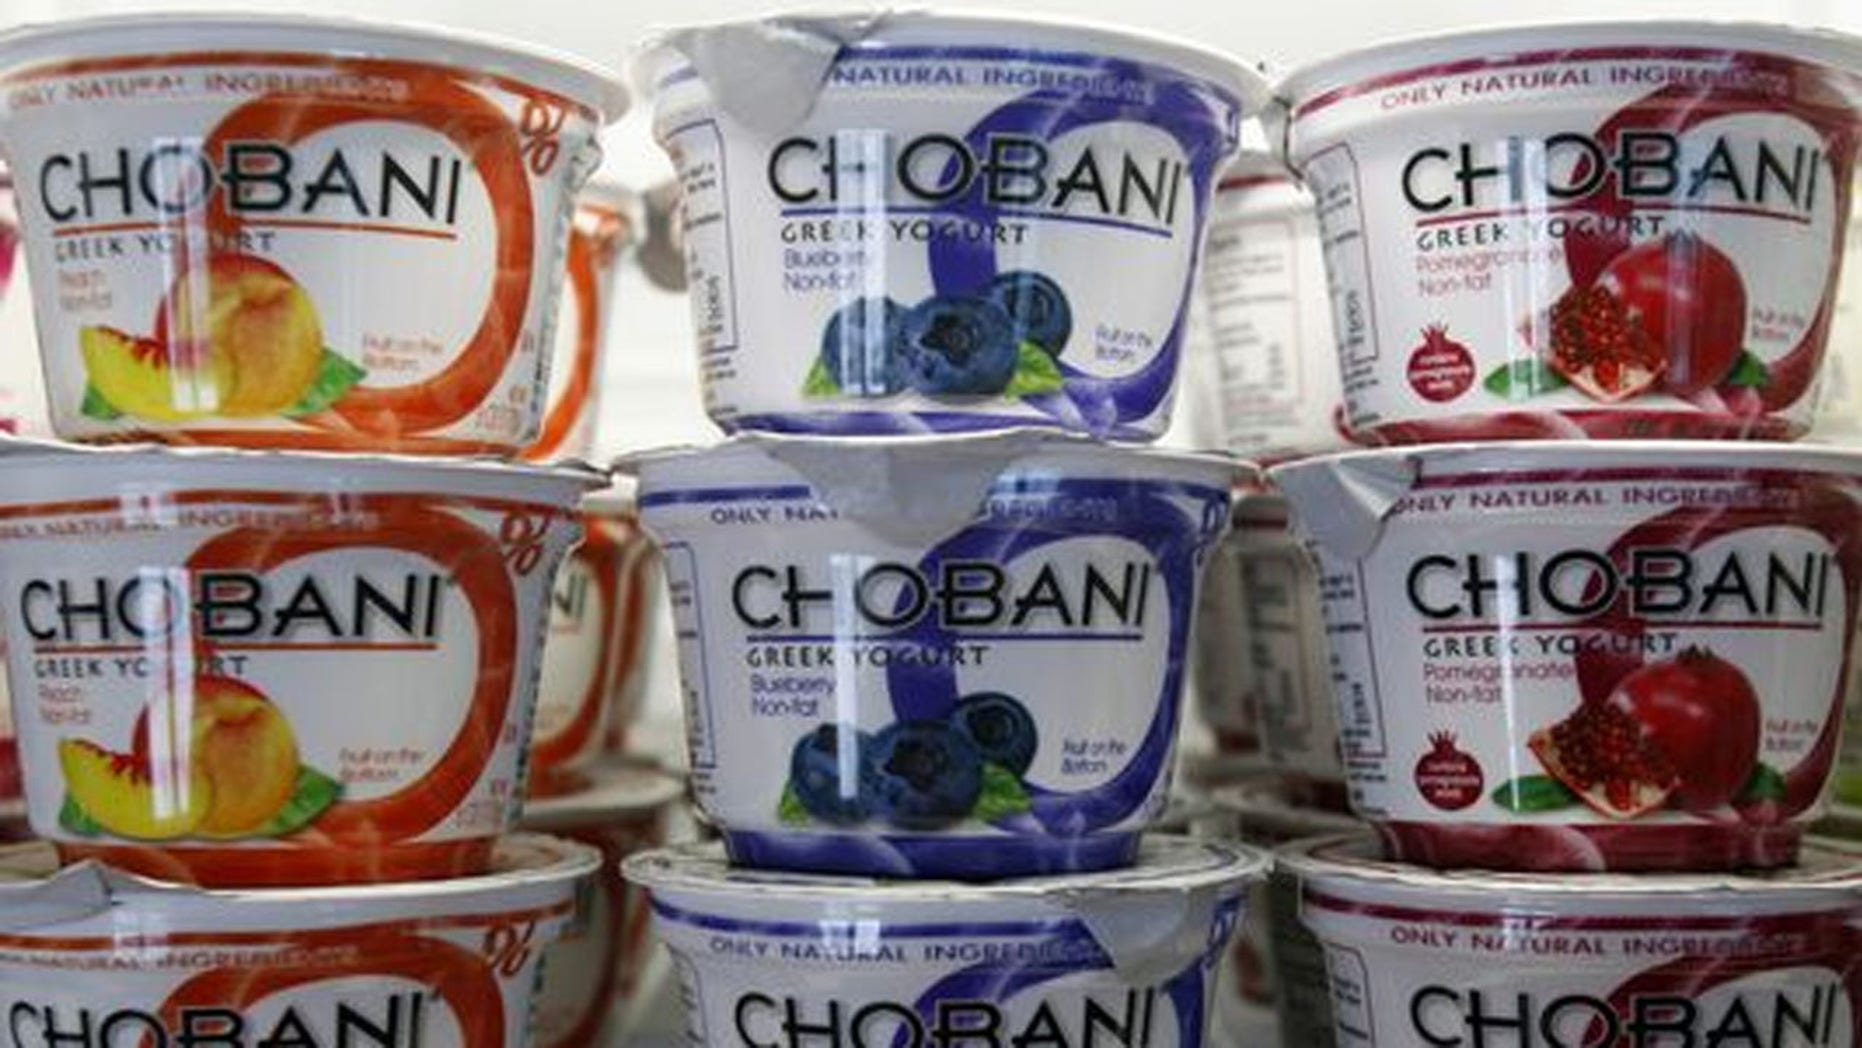 A federal judge ruled on Friday that New York-based Chobani must stop running ads that claim Dannon's rival light Greek yogurt brand contains bug spray and chlorine and is unsafe to eat.